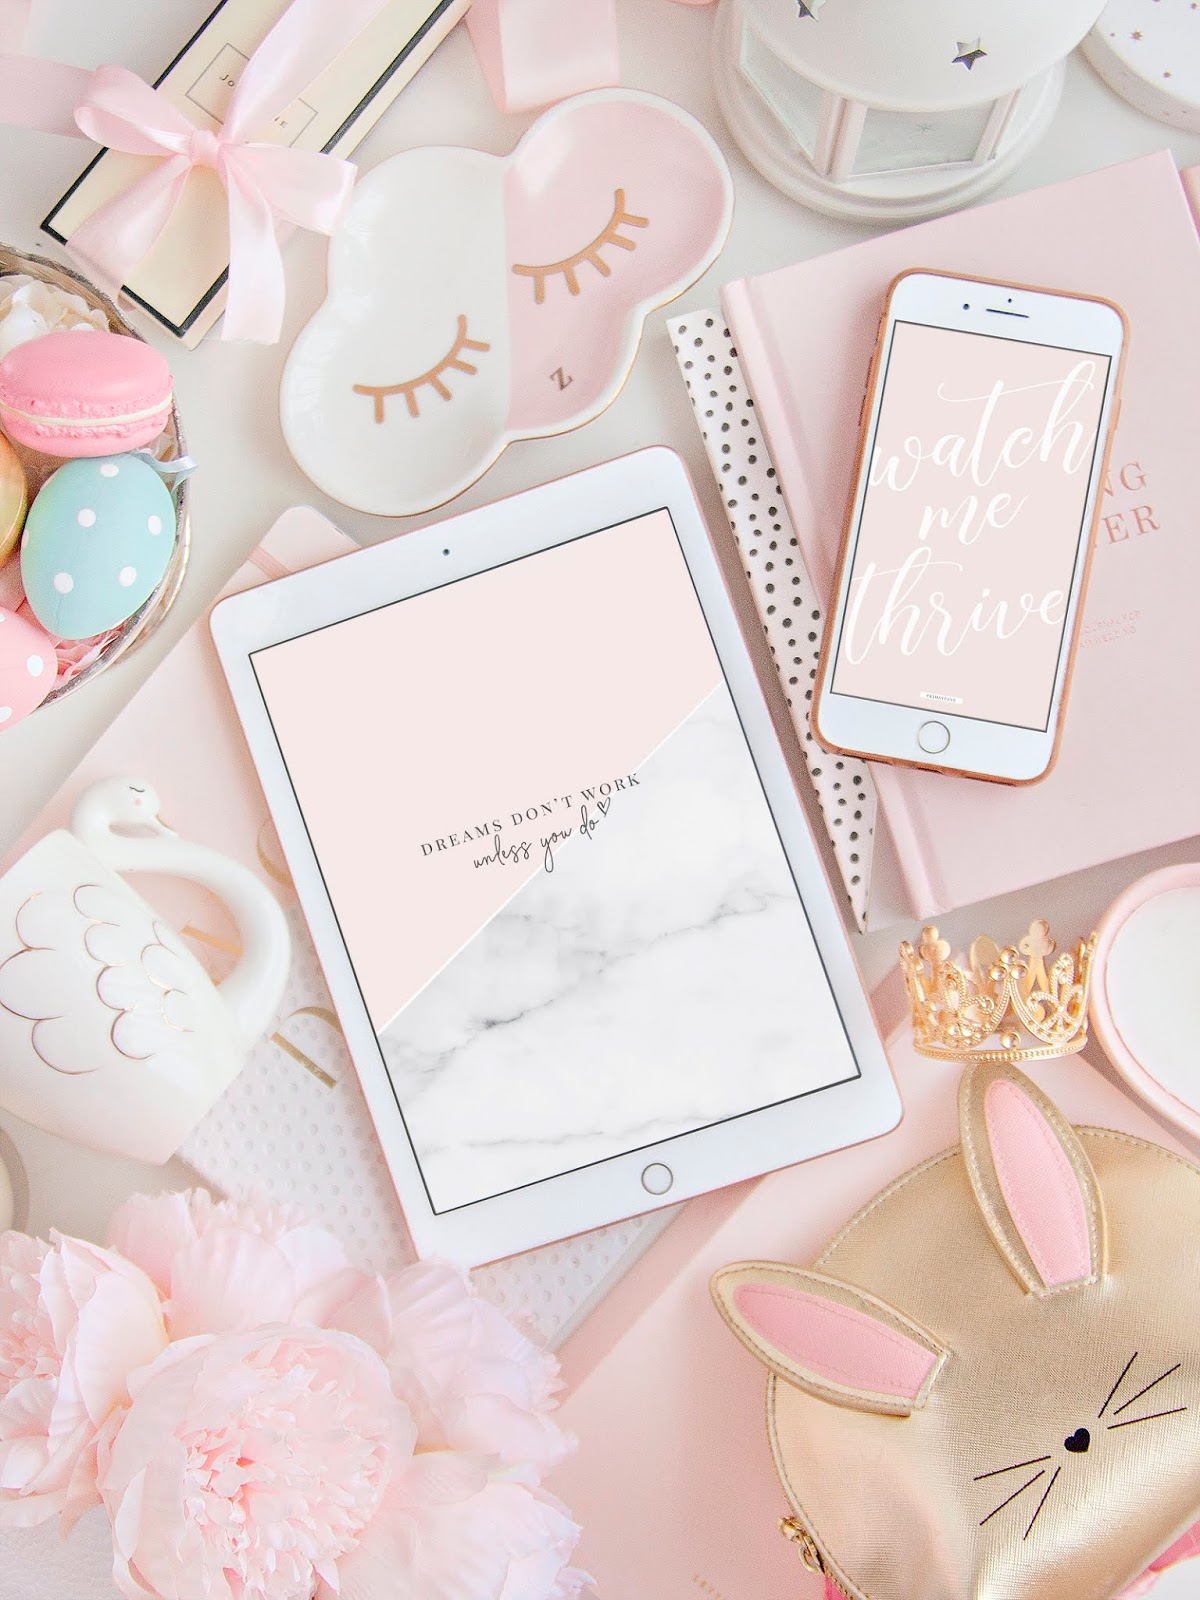 Flatlay image of motivational quote wallpapers on iphone and ipad